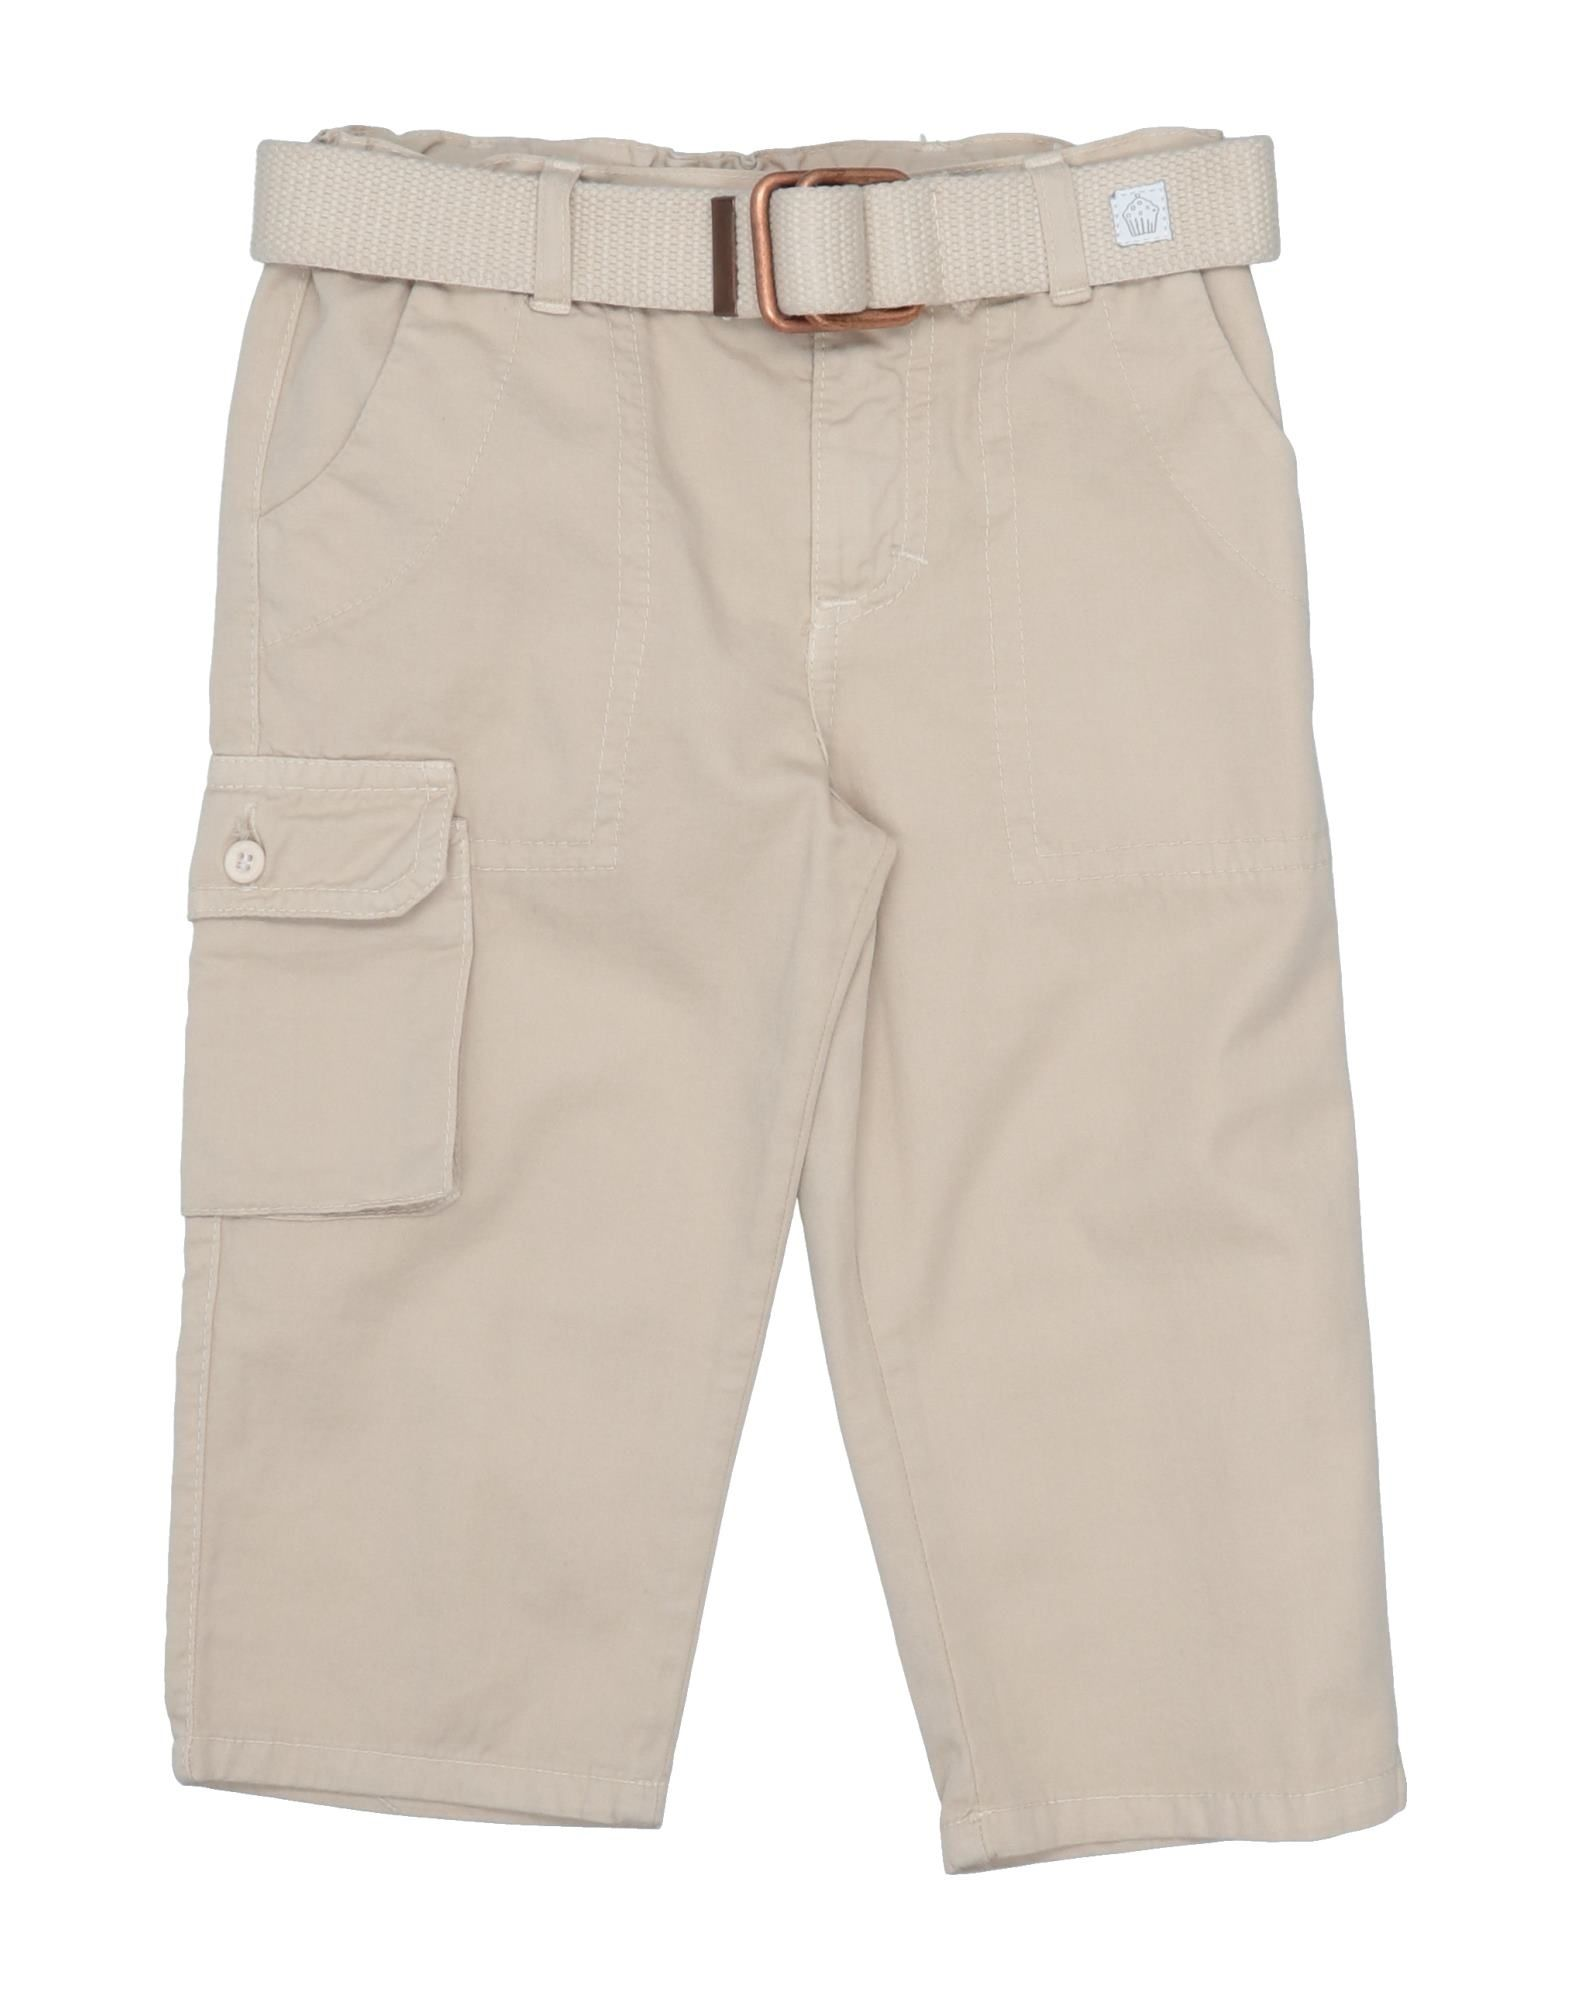 Muffin & Co. Kids' Casual Pants In Neutrals